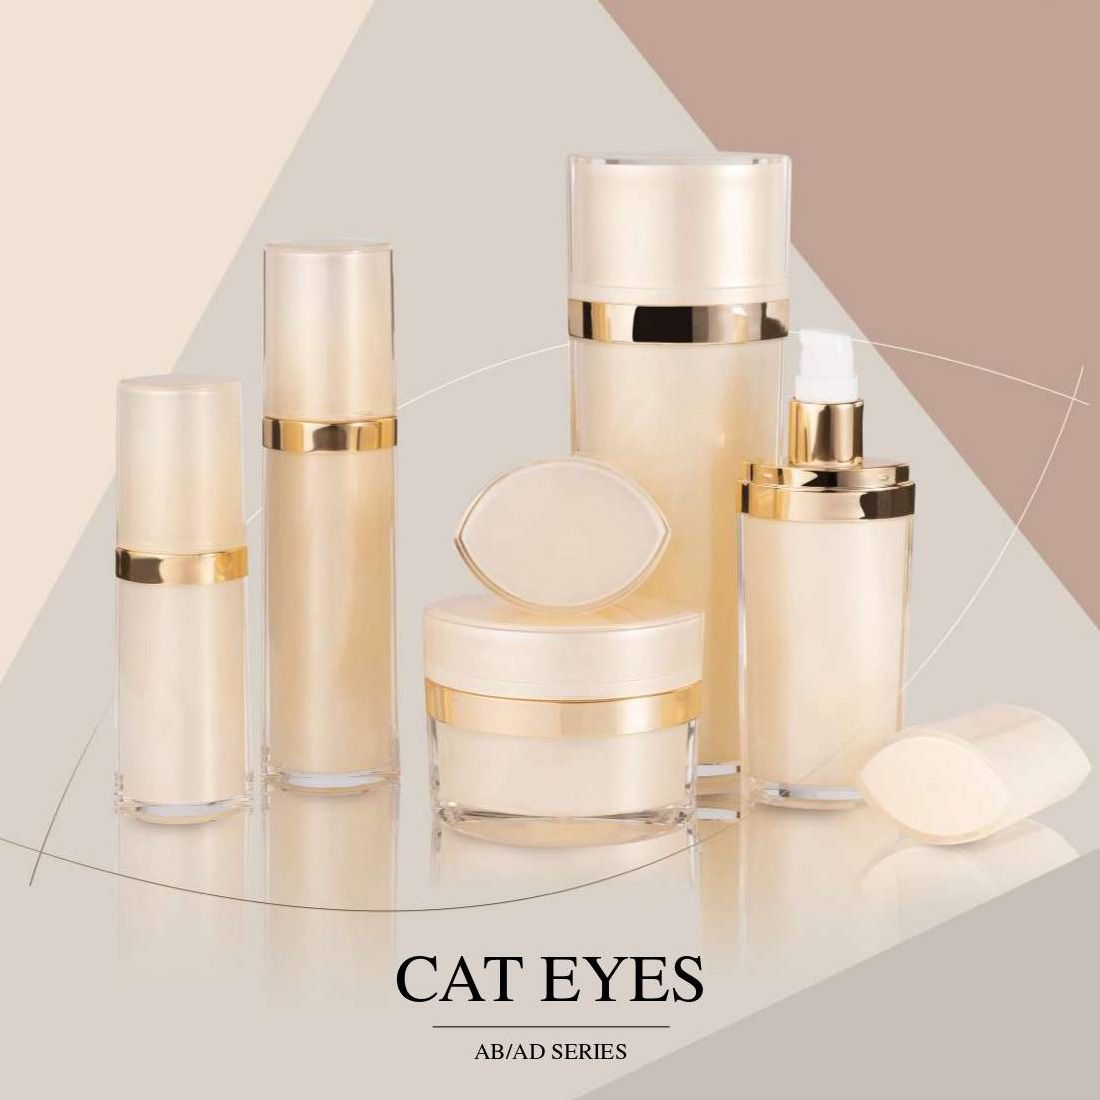 COSJAR cometic container design - Cat eyes series